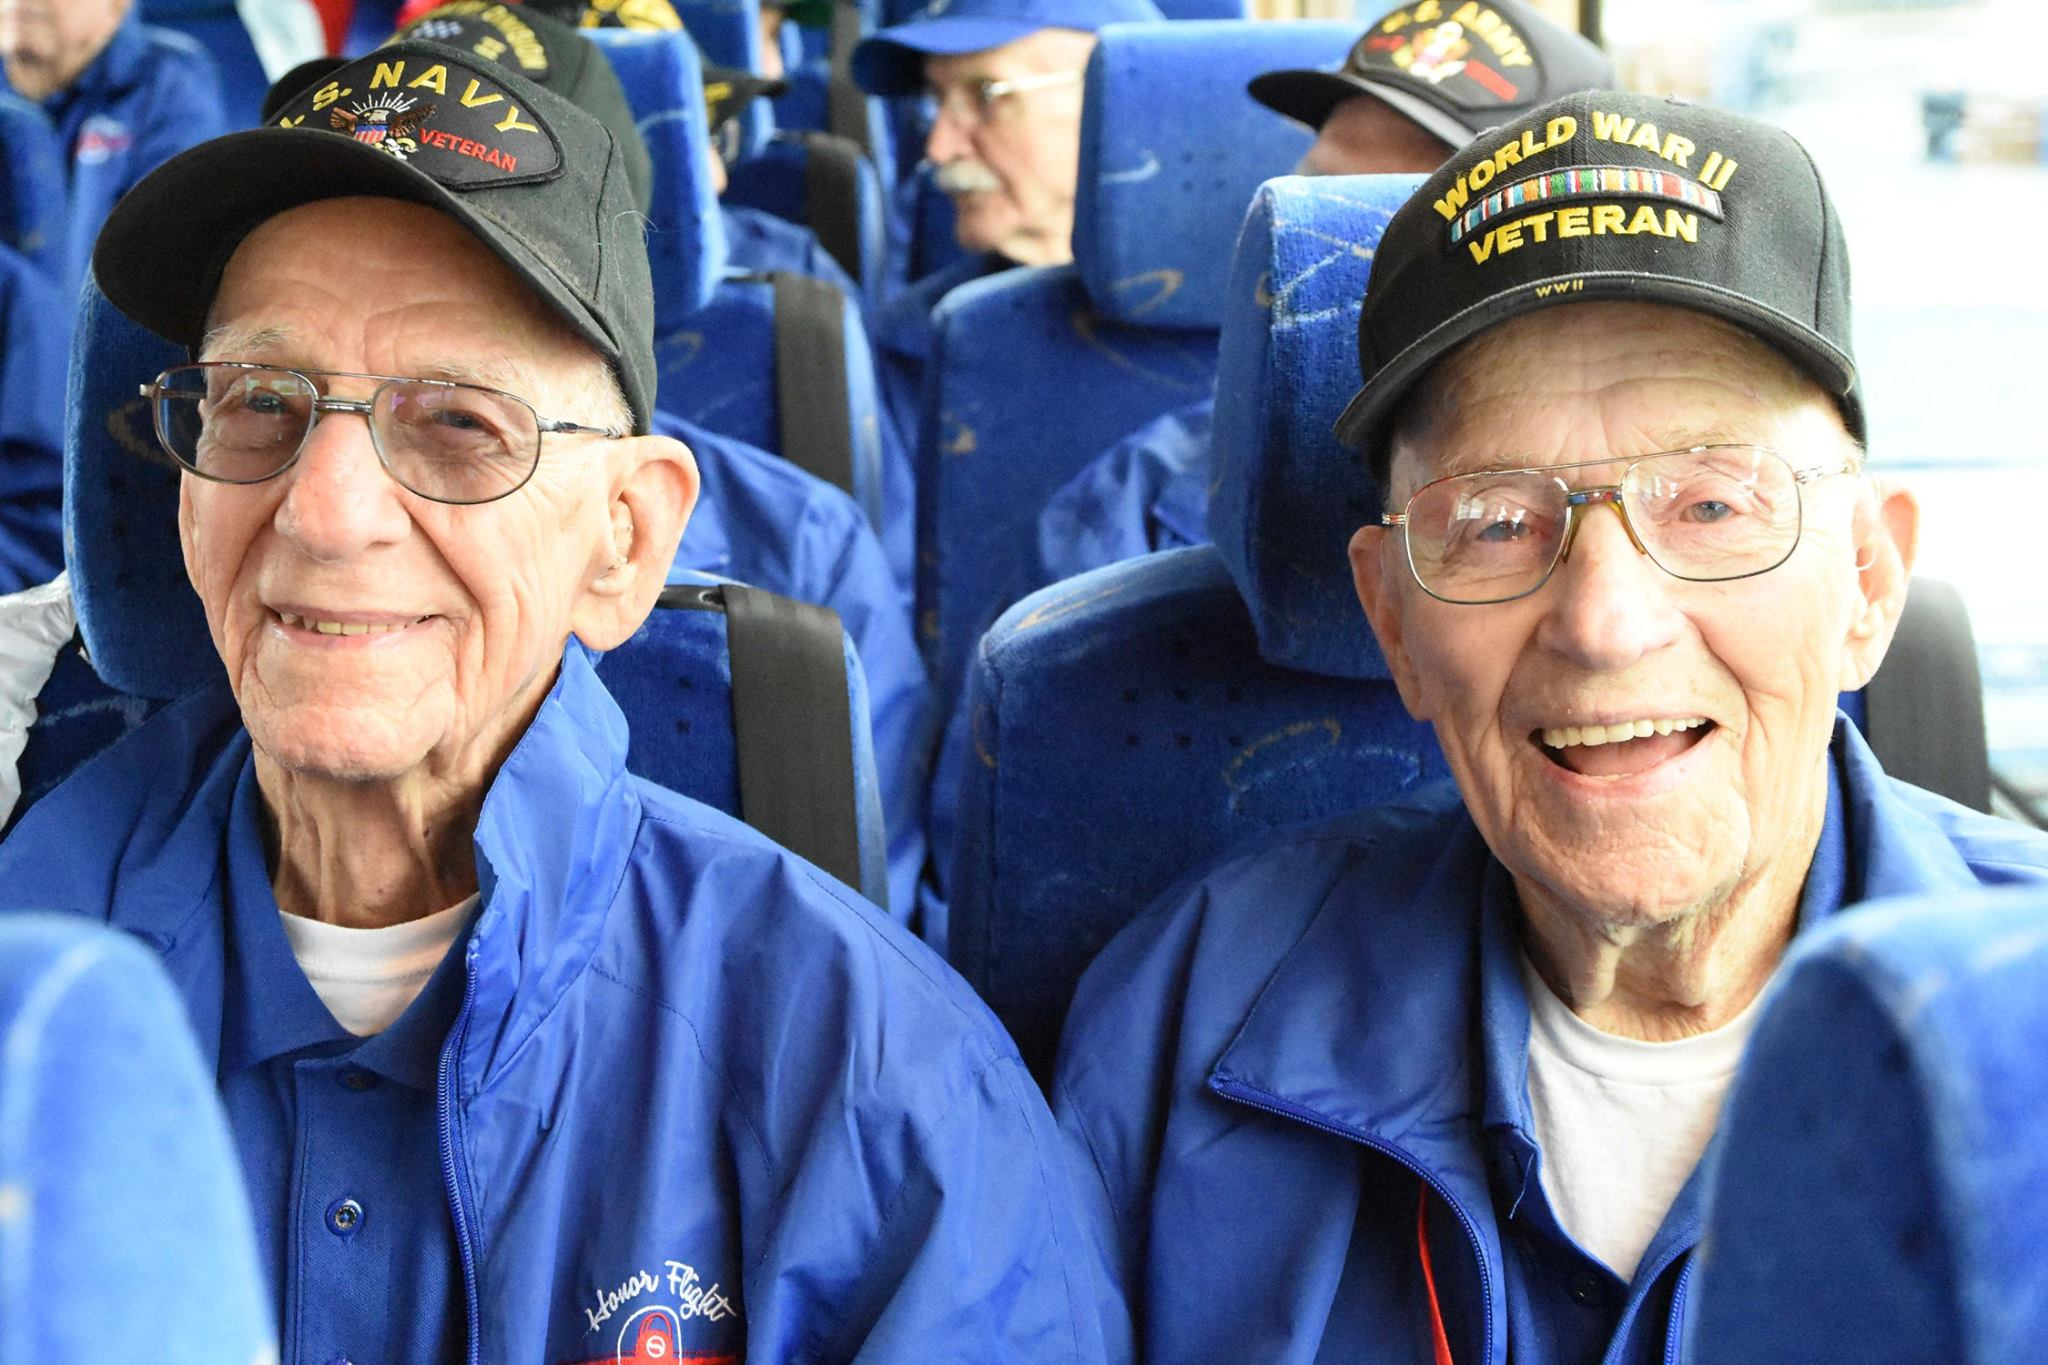 Honor Flight DFW 9th Annual Golf Classic gallery image #23